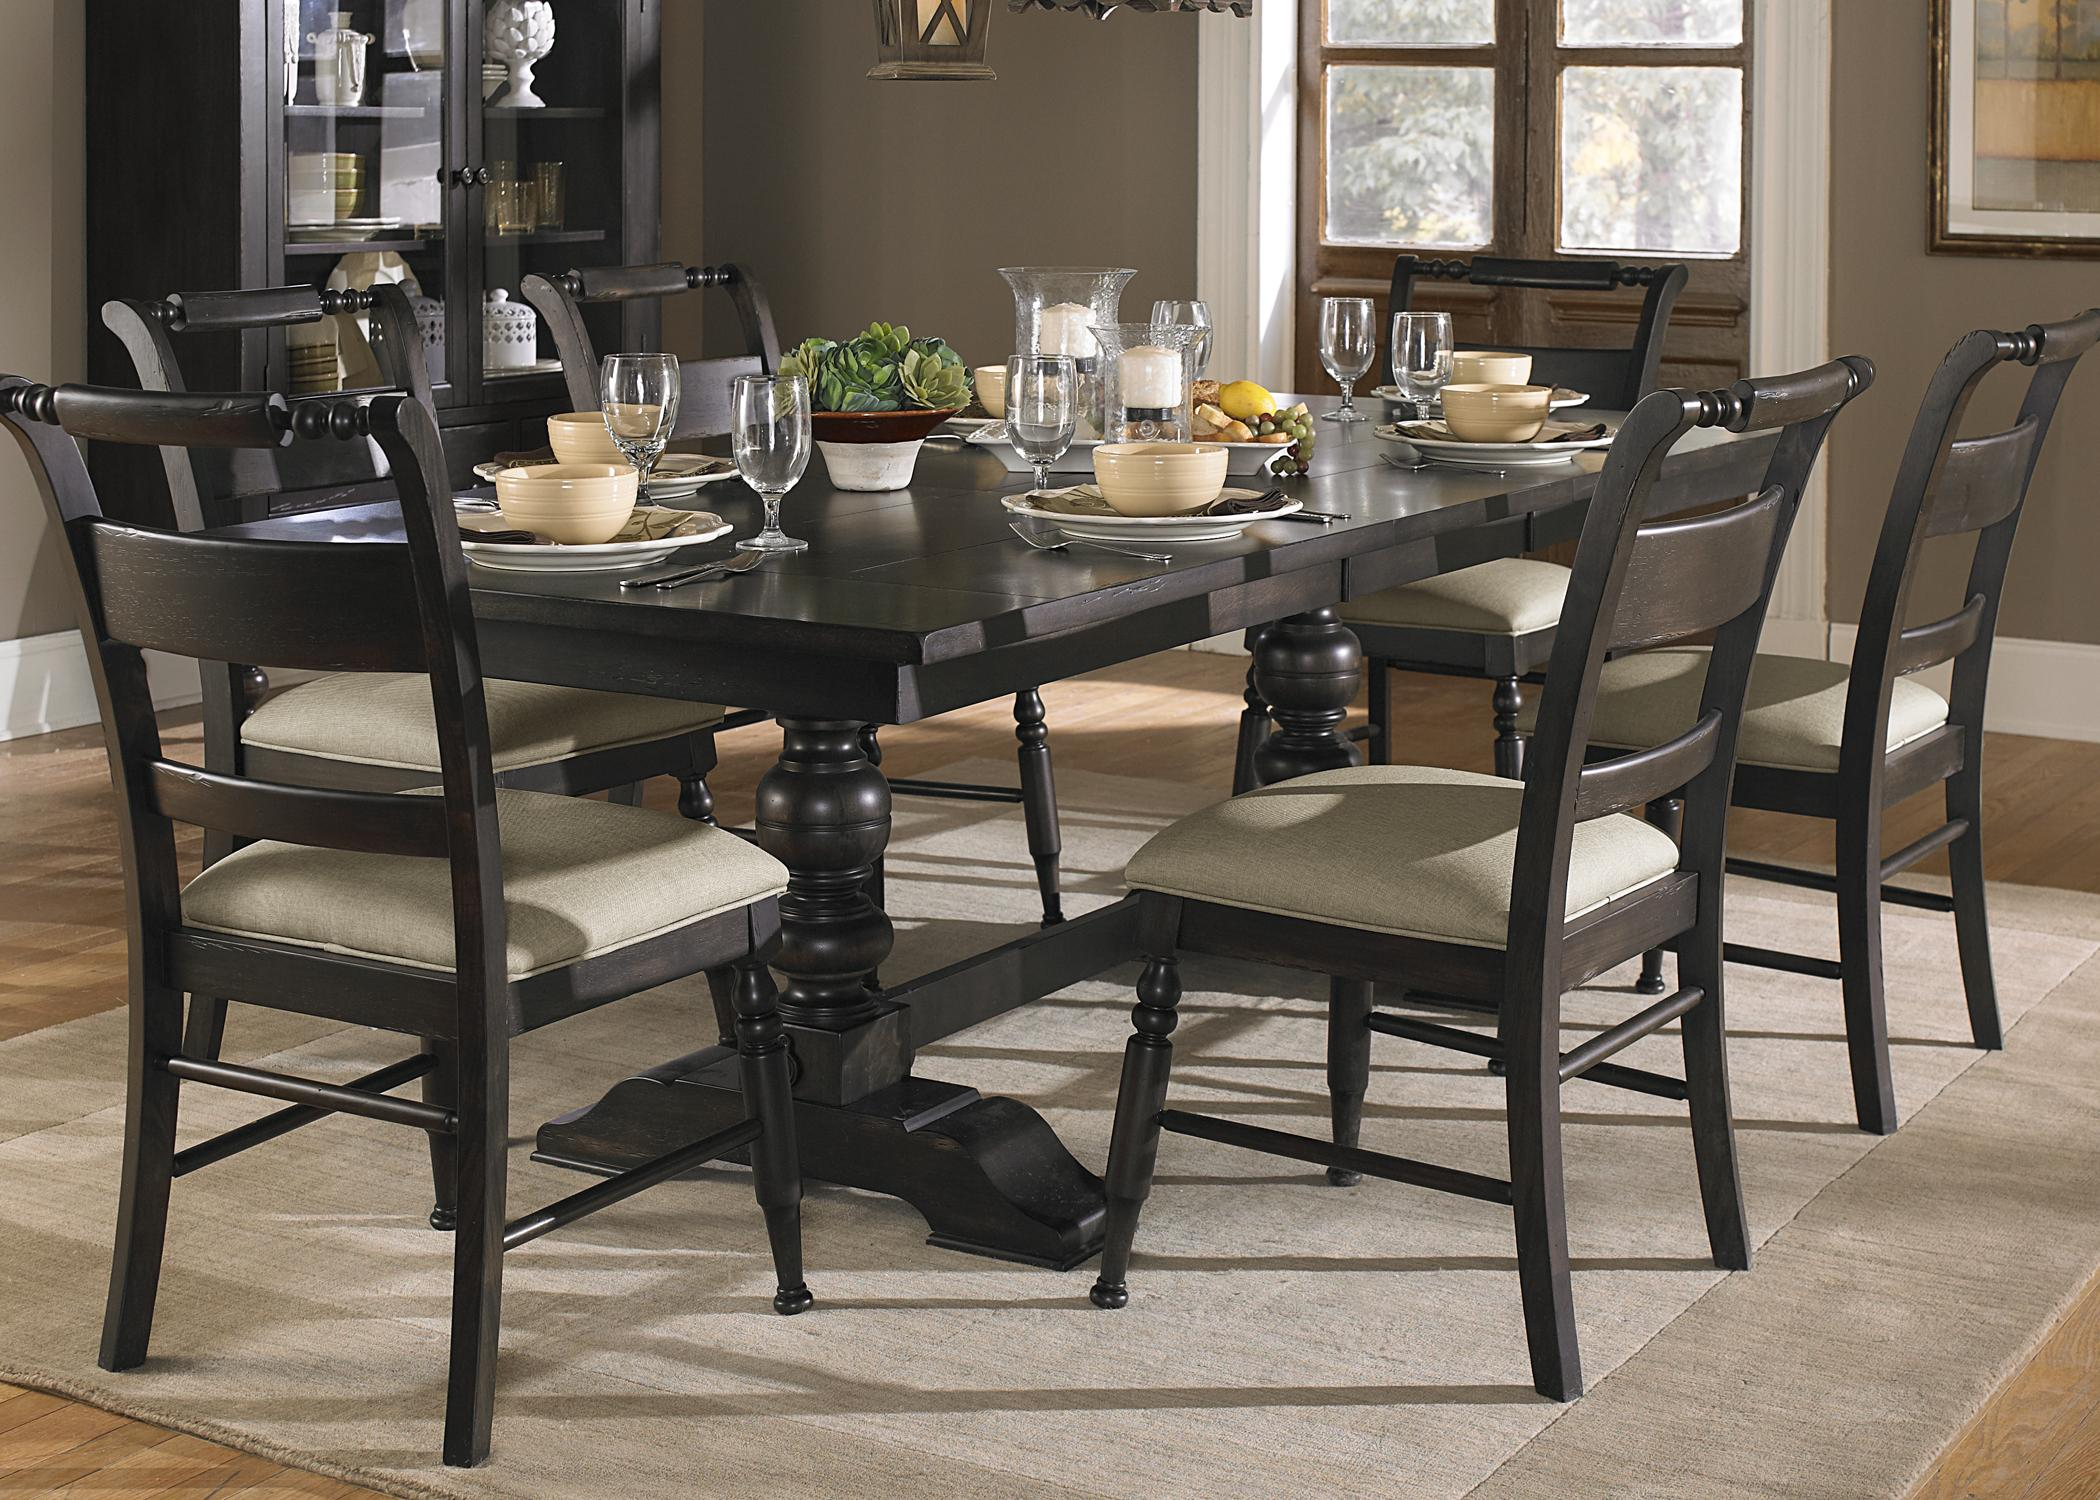 7 Piece Trestle Dining Room Table Set